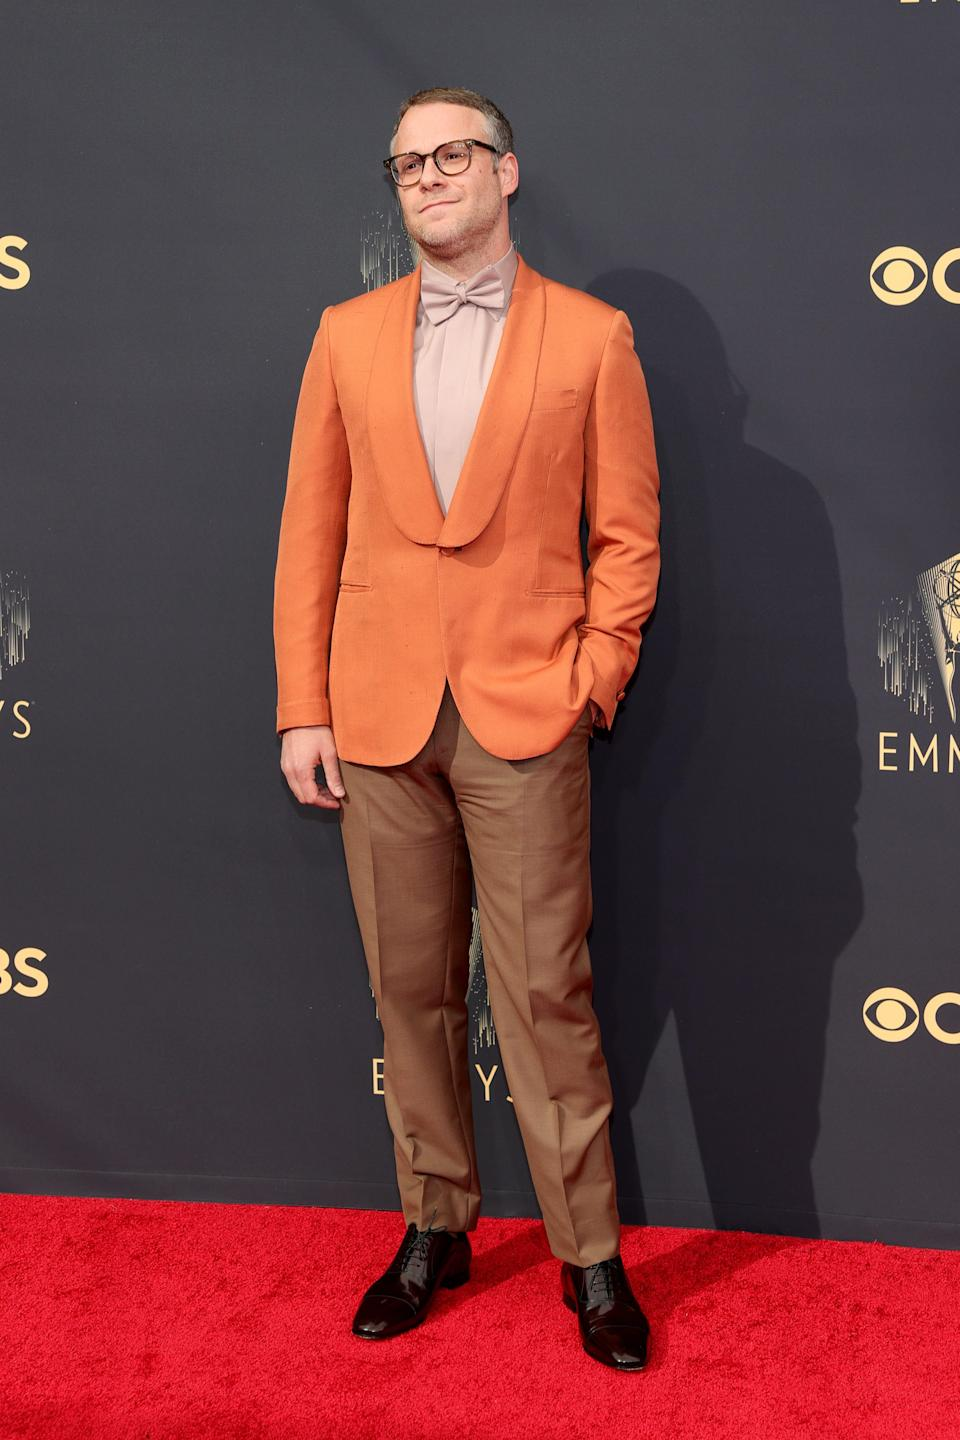 Seth Rogen attends the 2021 Emmys.